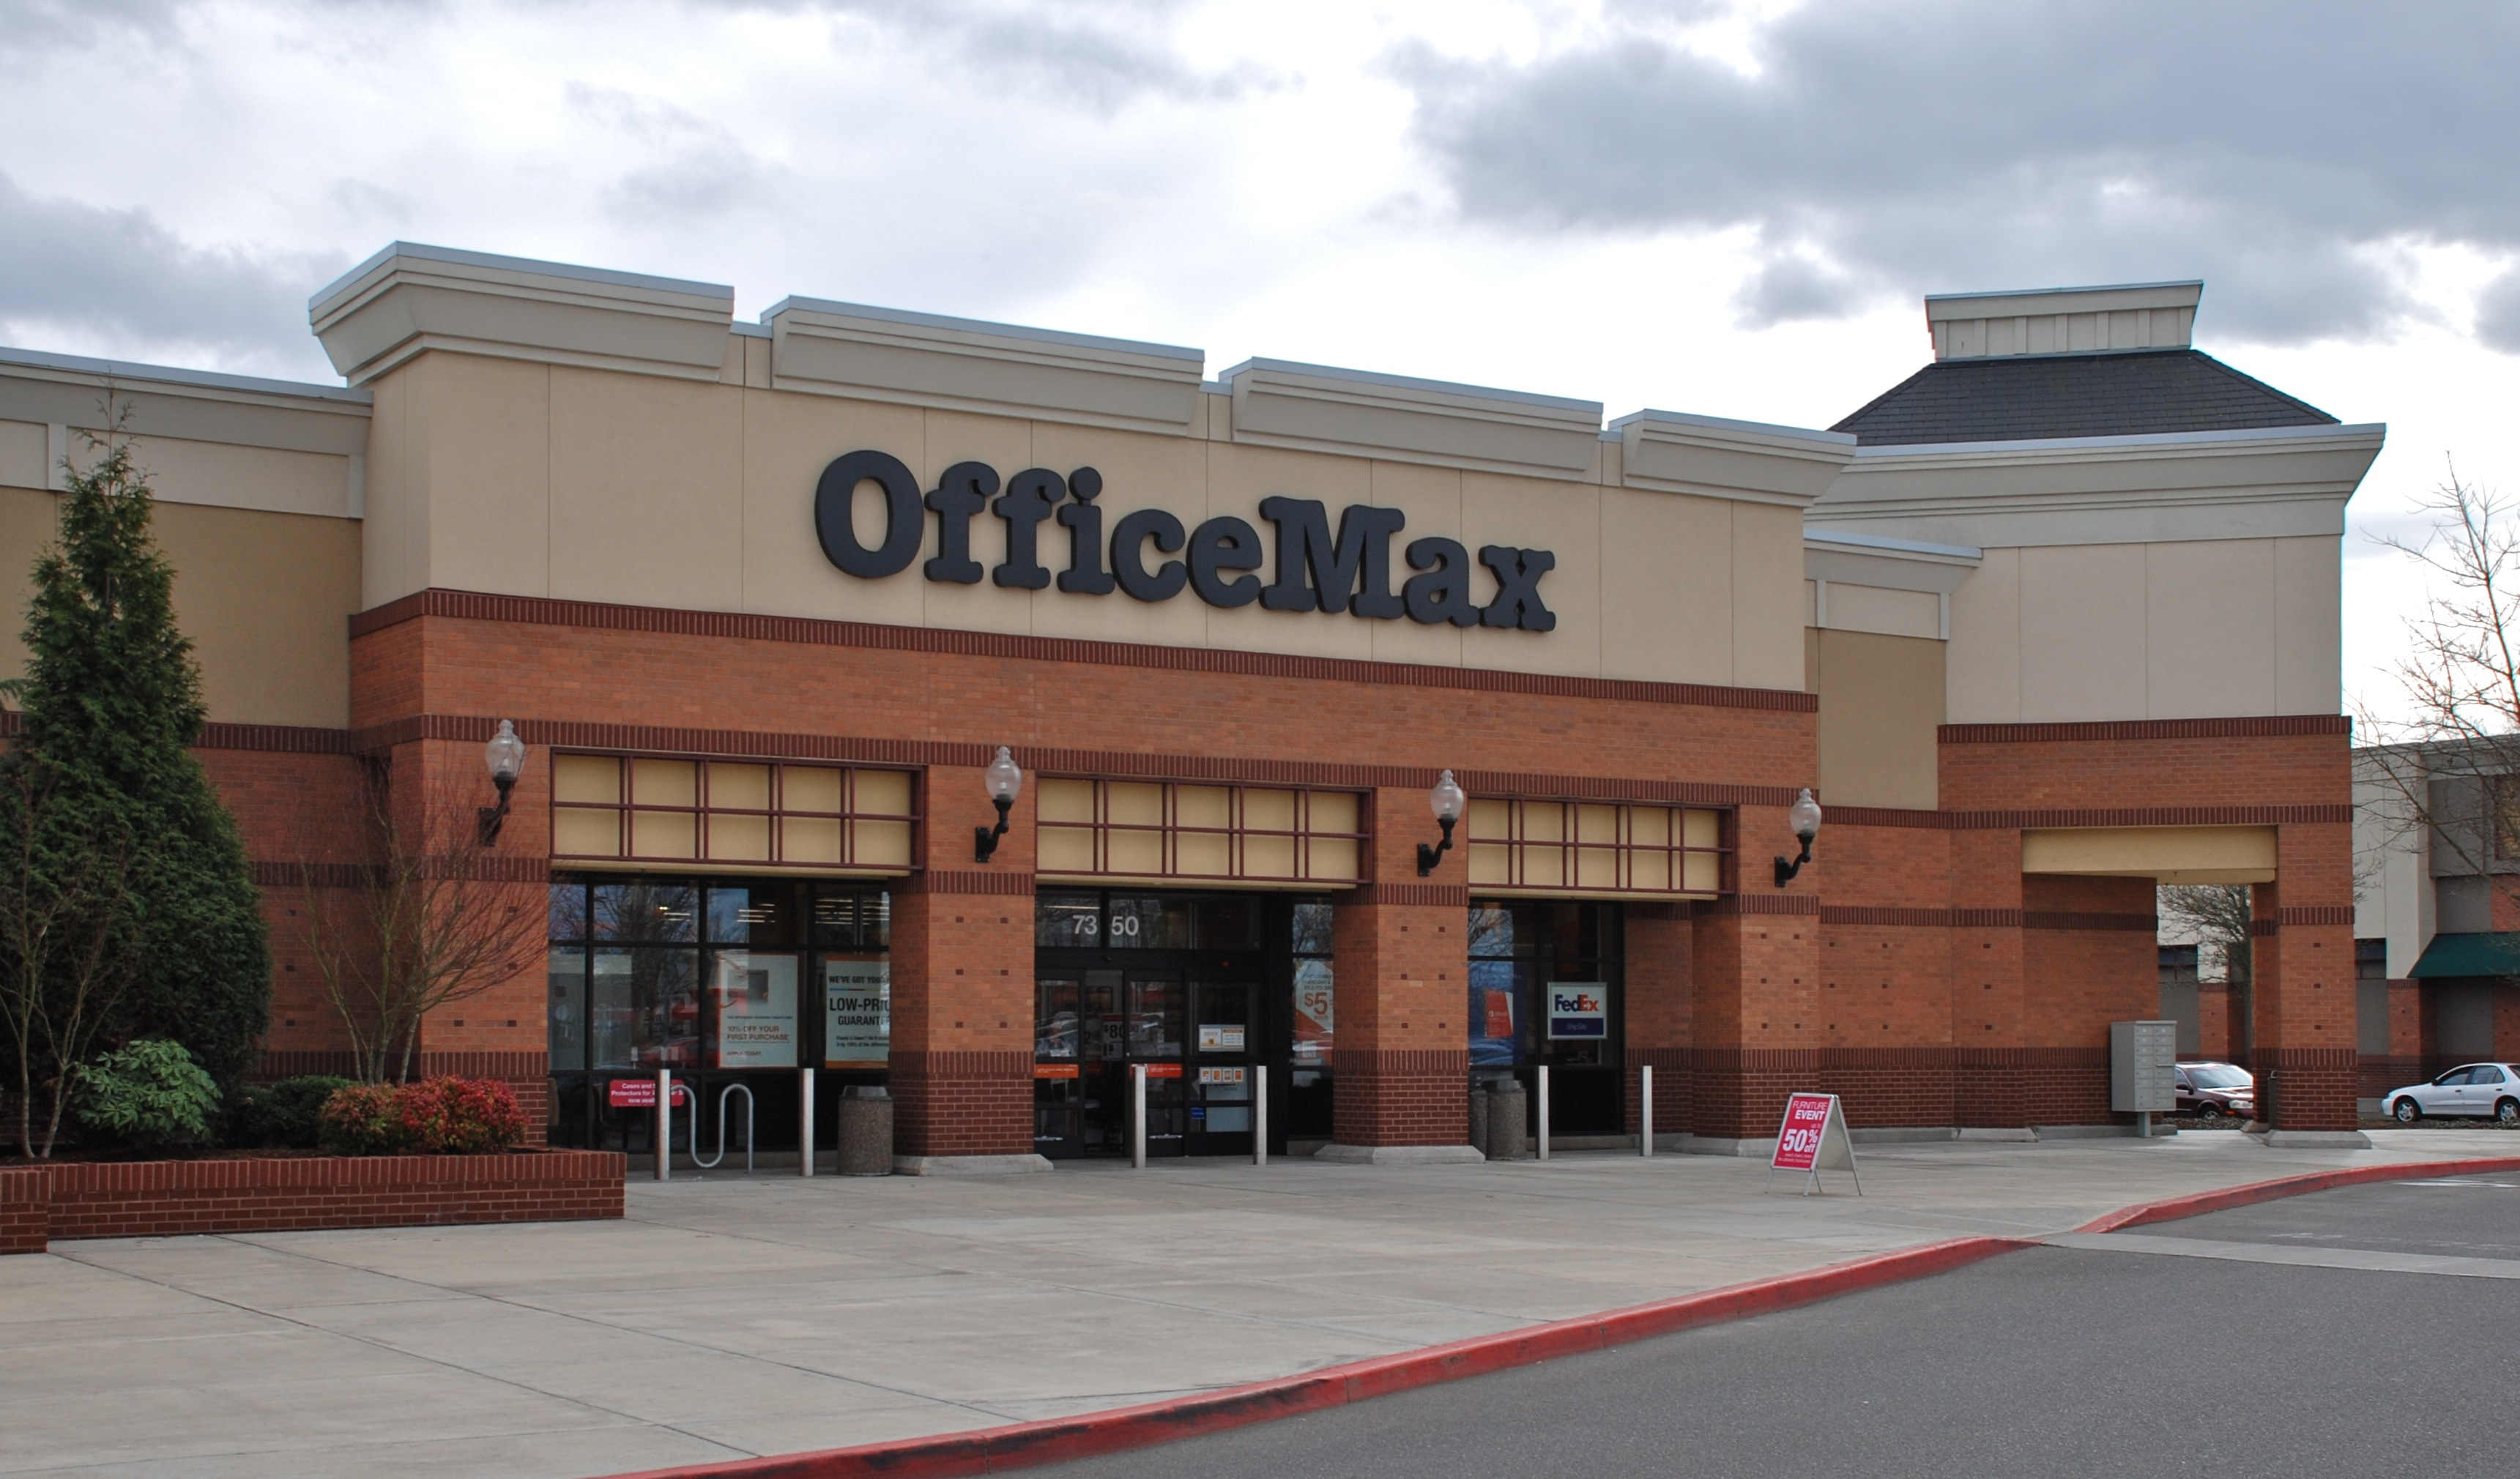 25 verified Office Depot and OfficeMax coupons and promo codes as of Dec 2. Popular now: Up to $70 Off Featured Technology Deals. Trust sepfeyms.ga for Office savings.